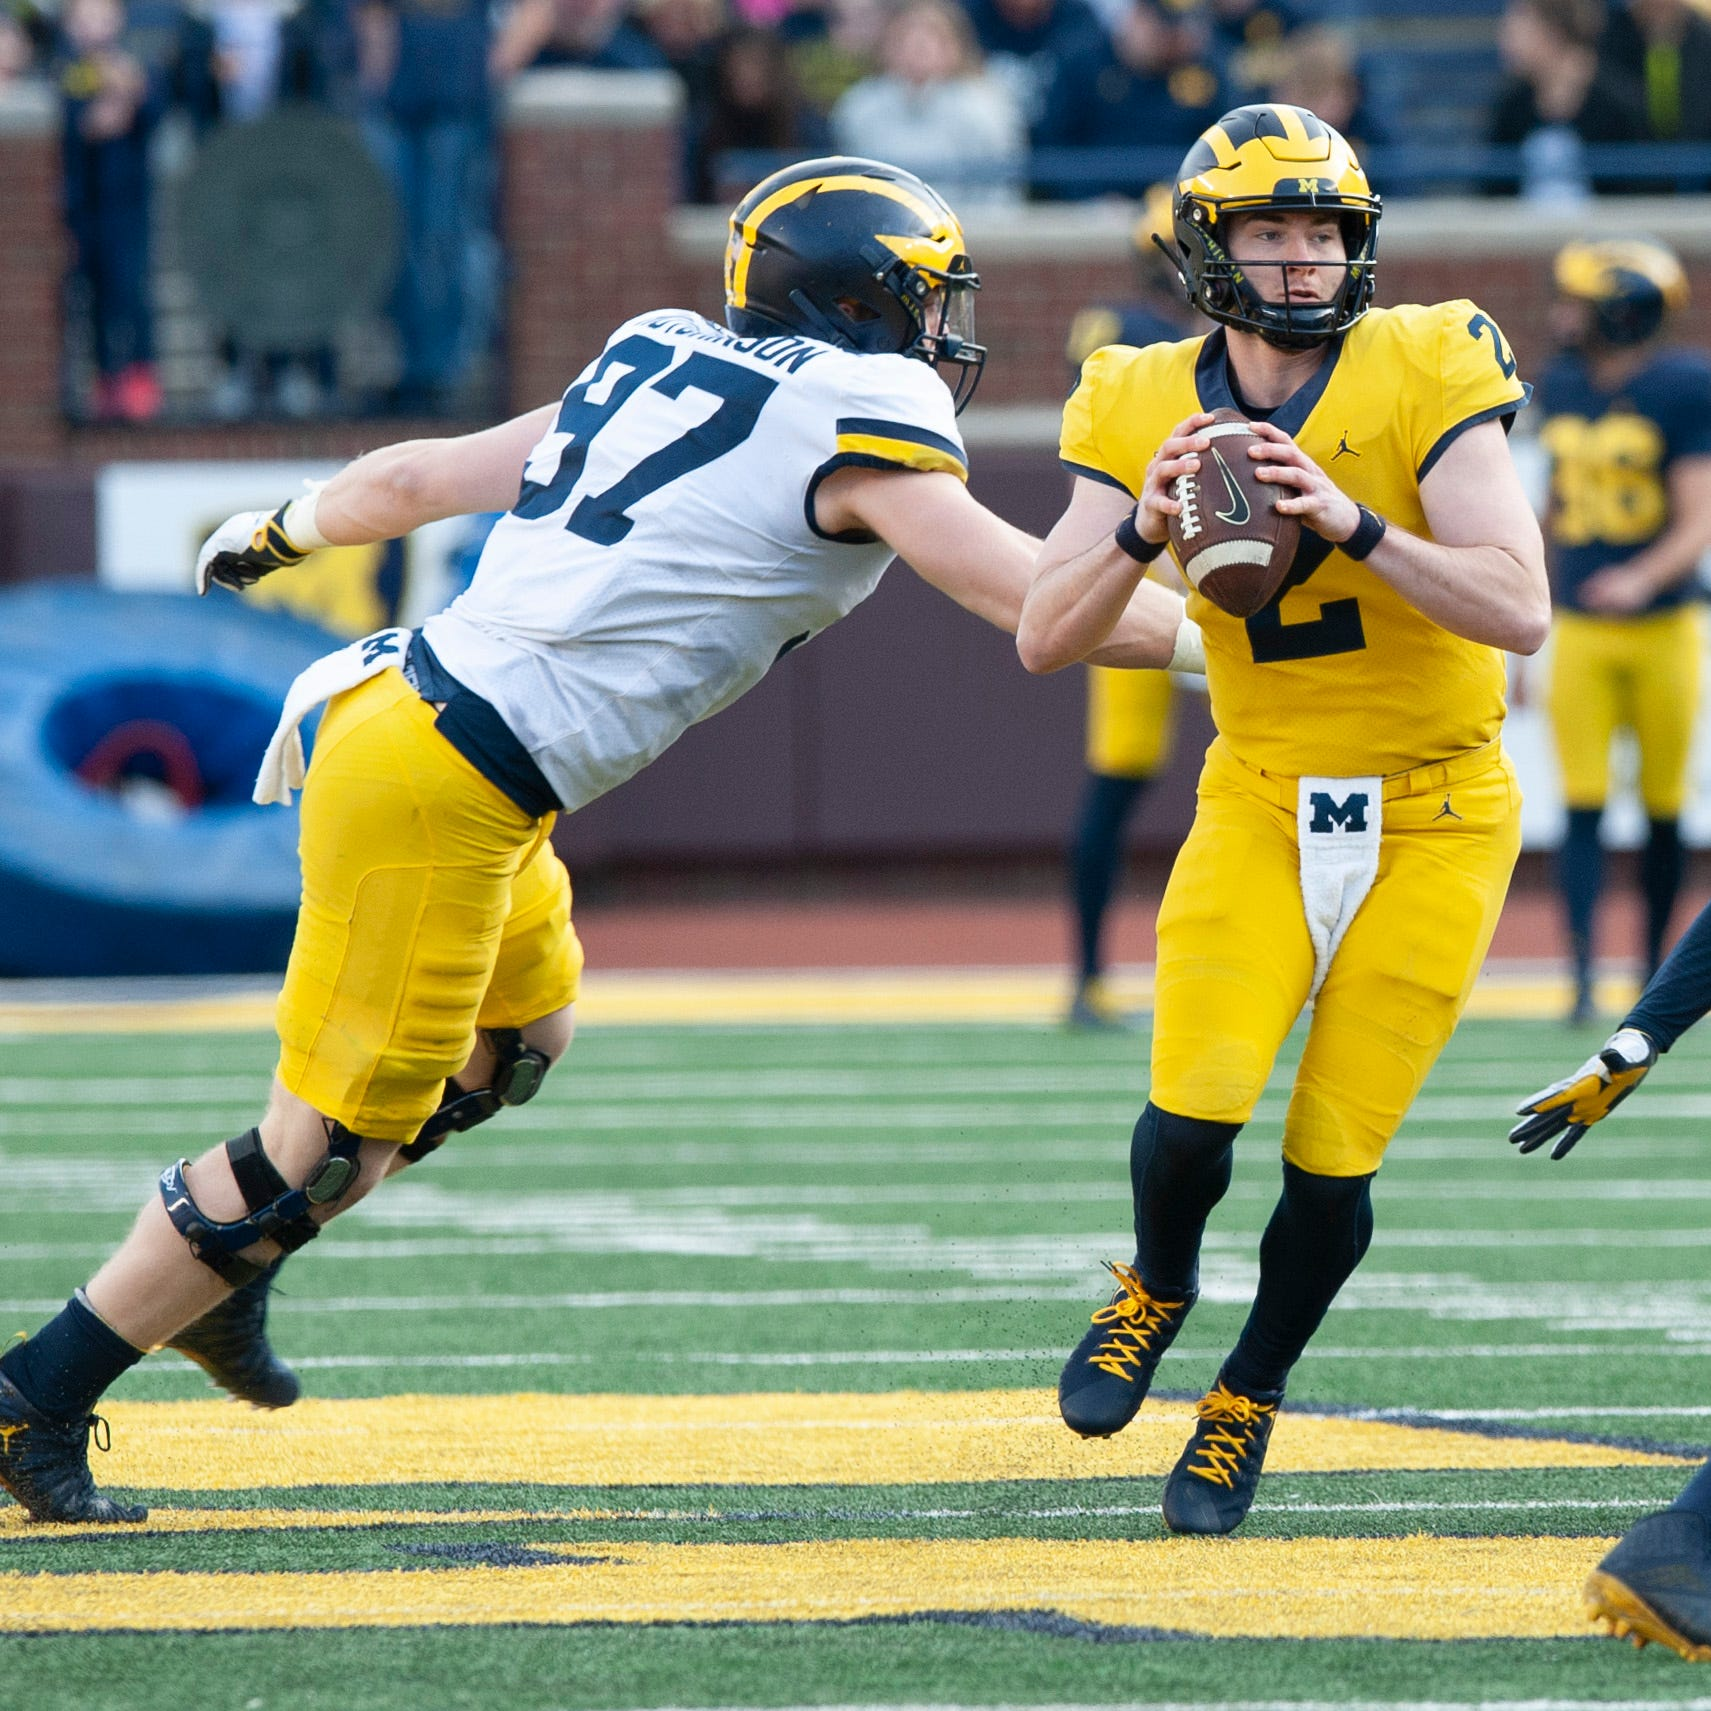 Michigan's 'mutt of a dog' offense likely to employ library of plays